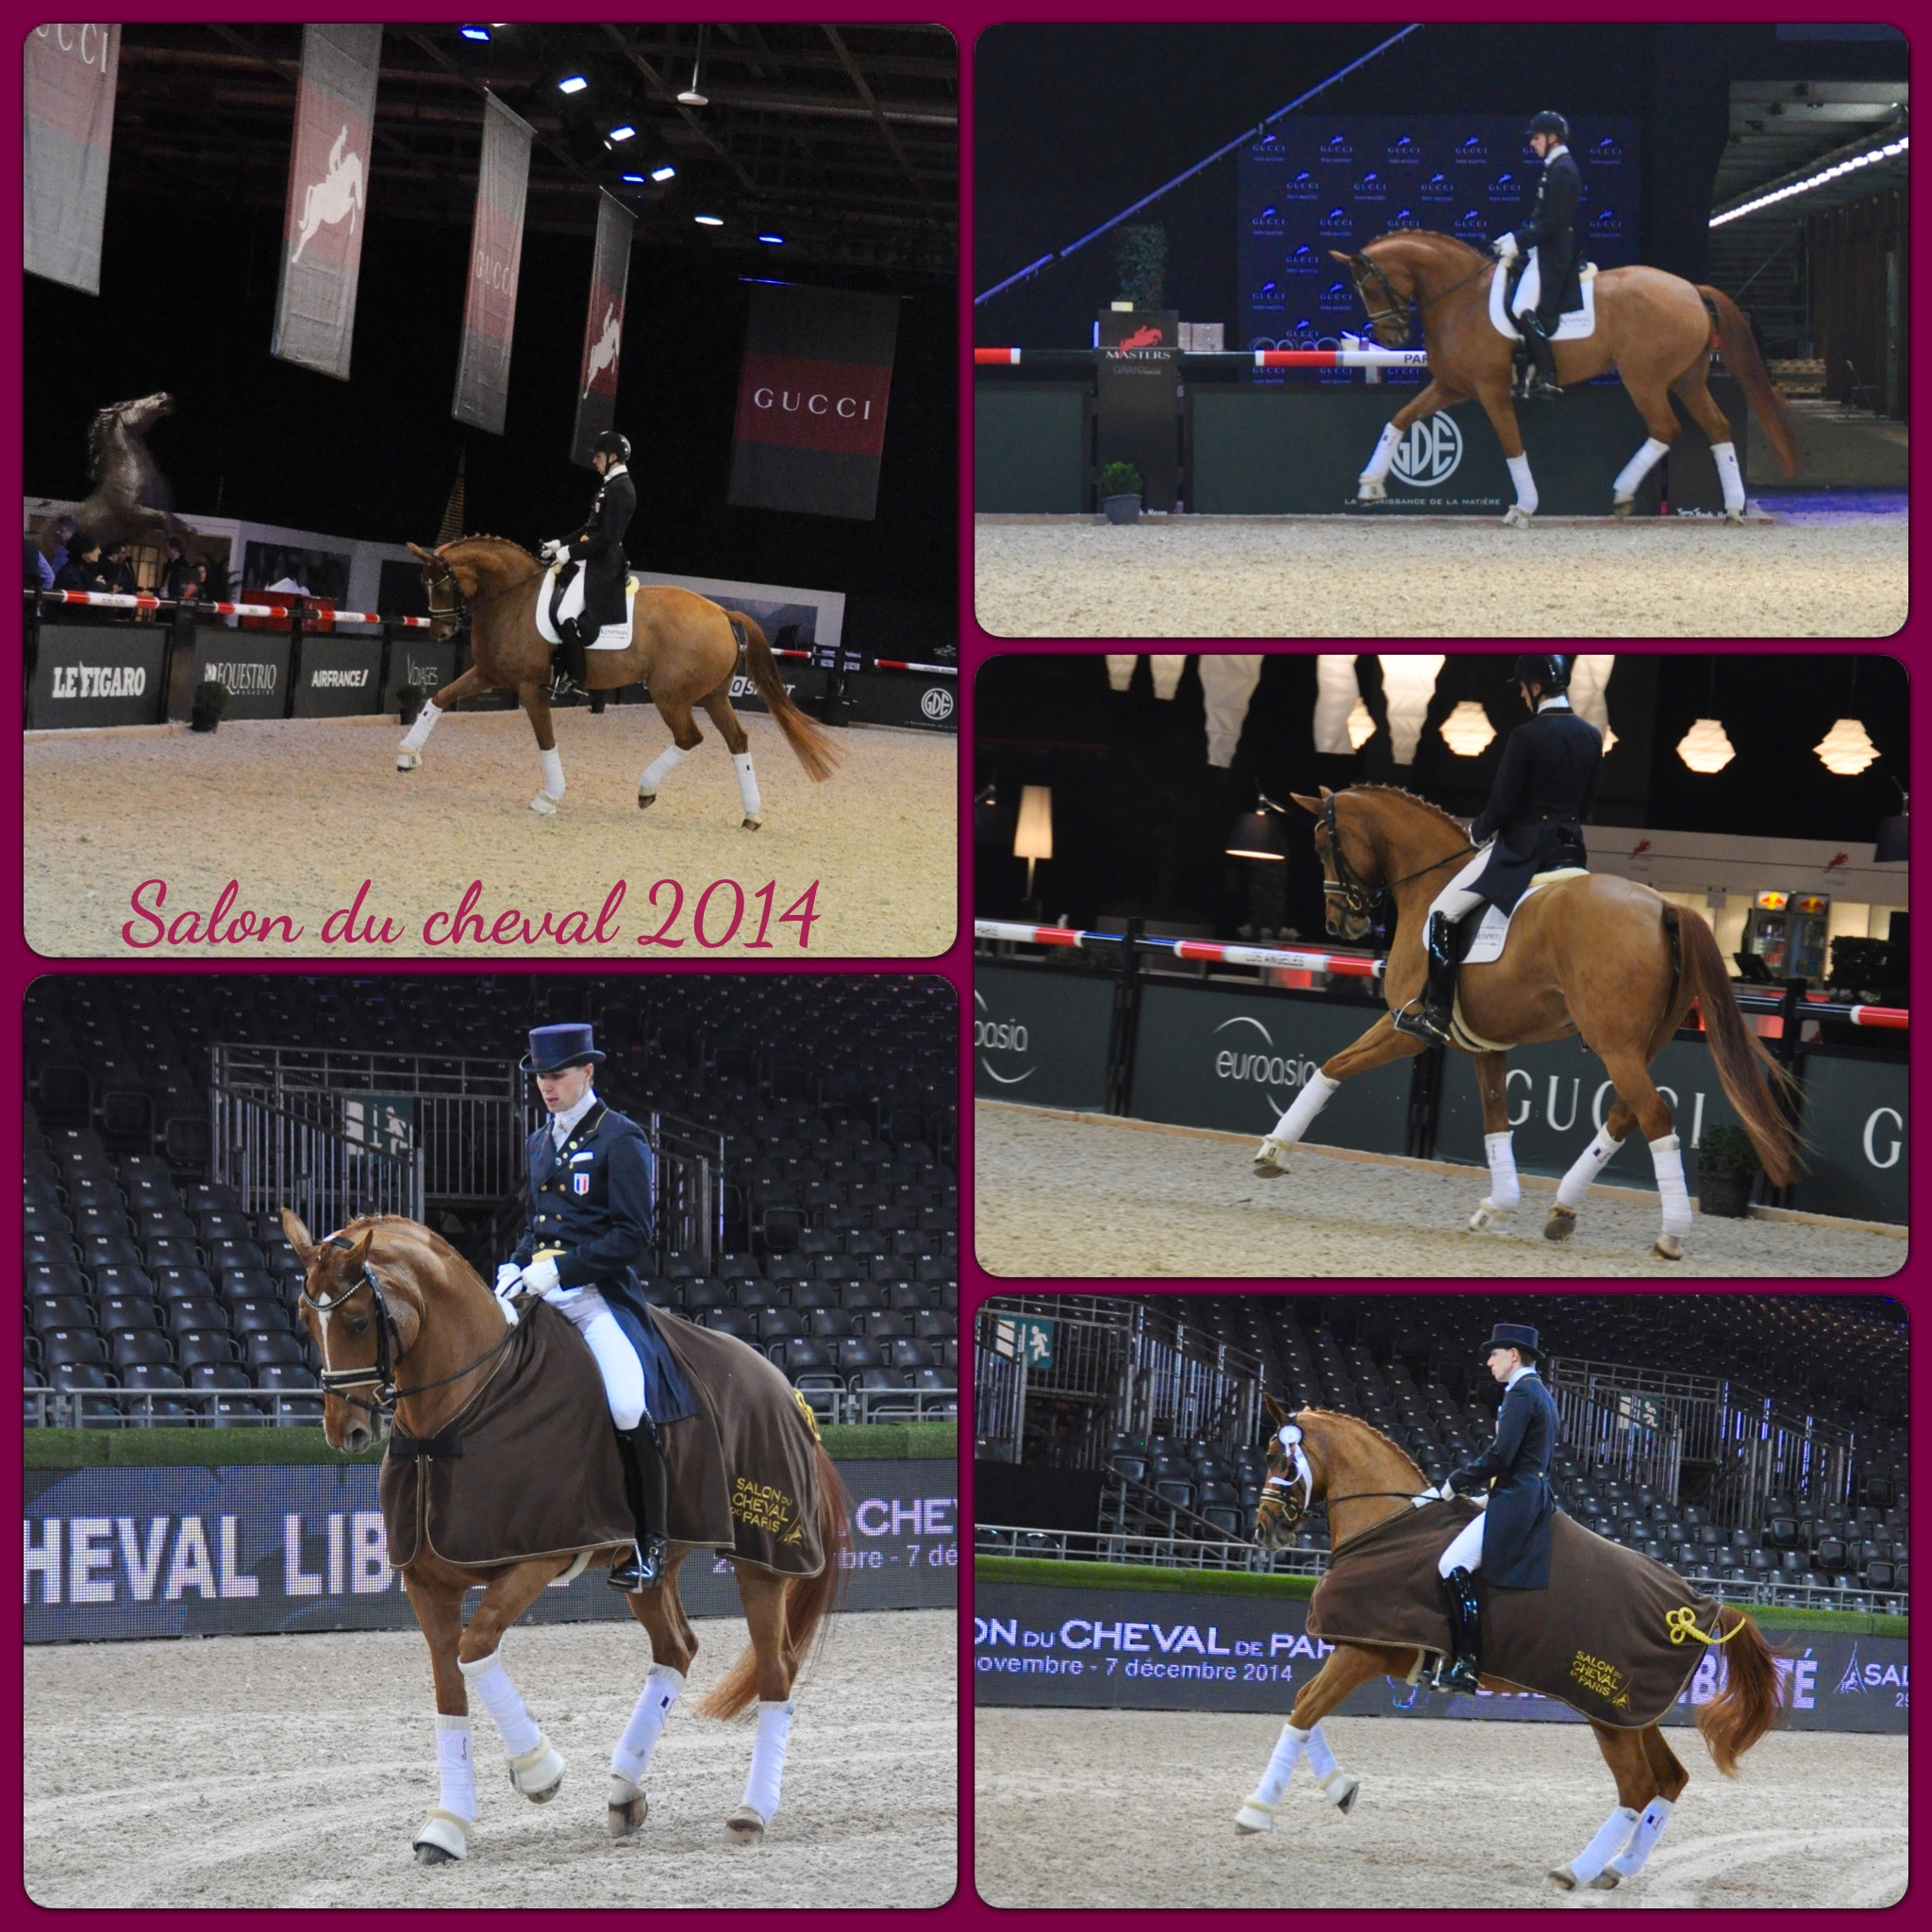 Sellerie alegria le sp cialiste du mat riel d 39 quitation de dressage online - Salon du cheval 2014 paris ...